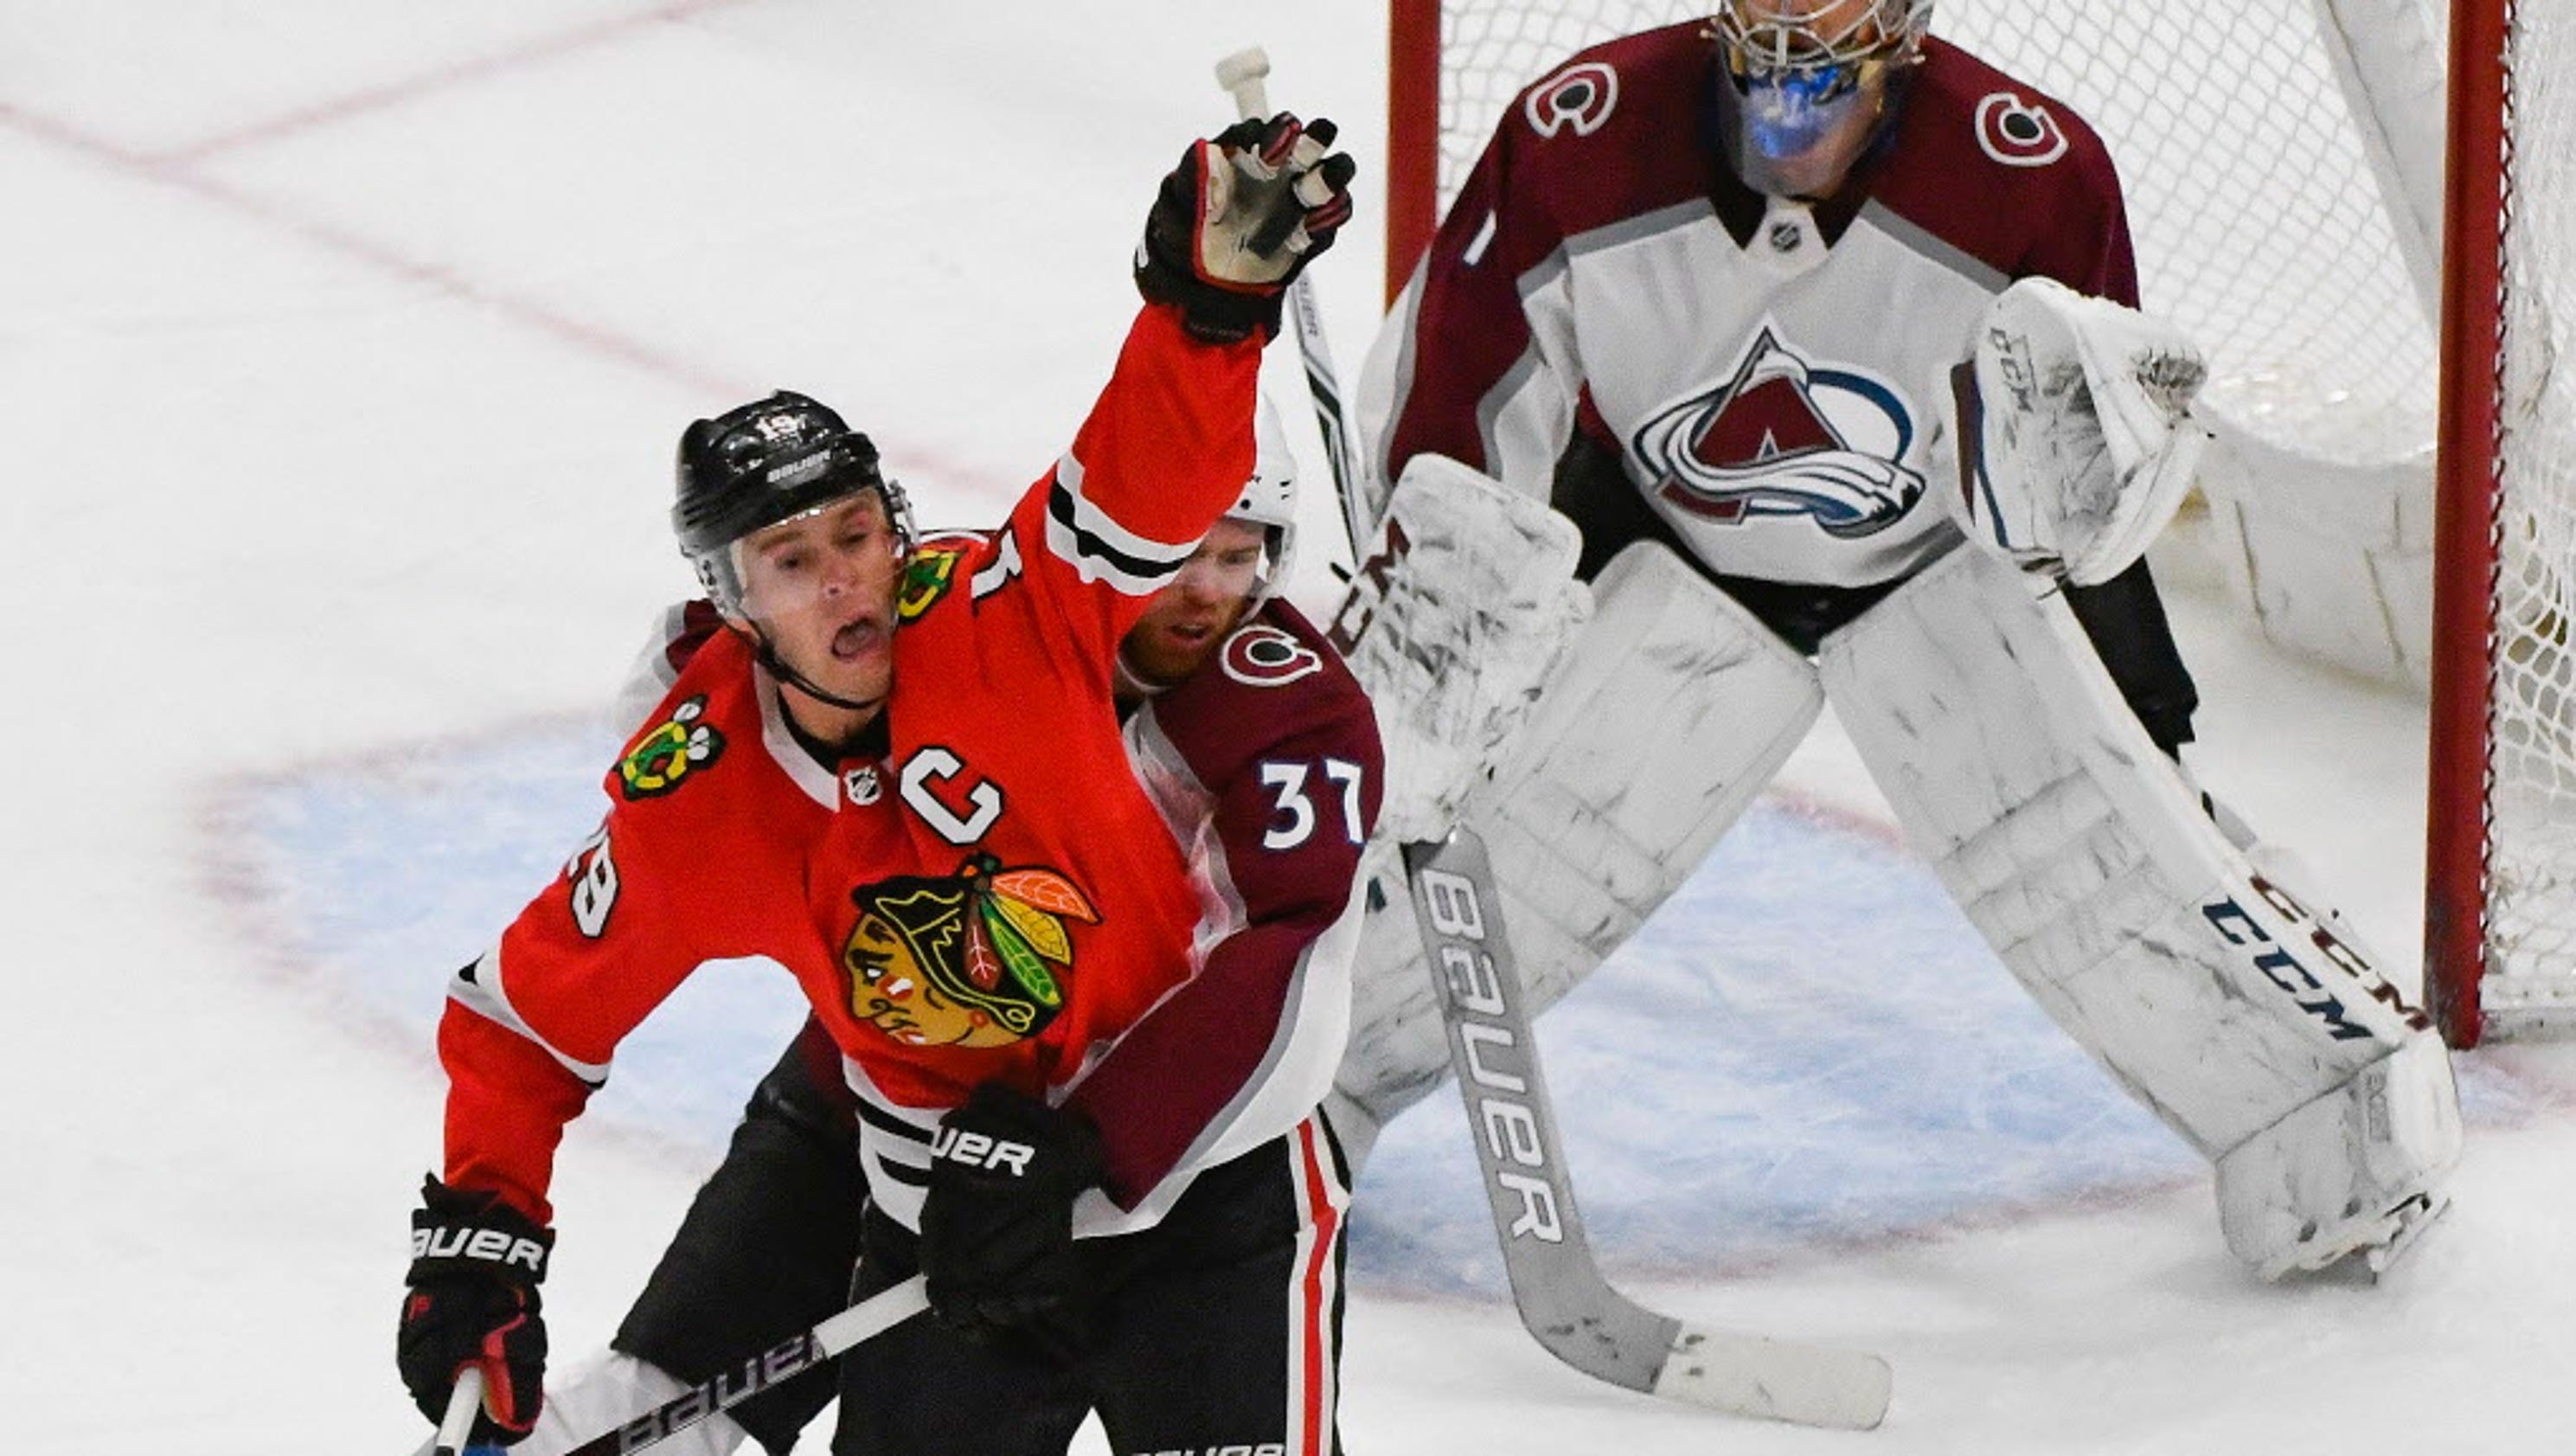 636571901558478658-usp-nhl-colorado-avalanche-at-chicago-blackhawks-98580328